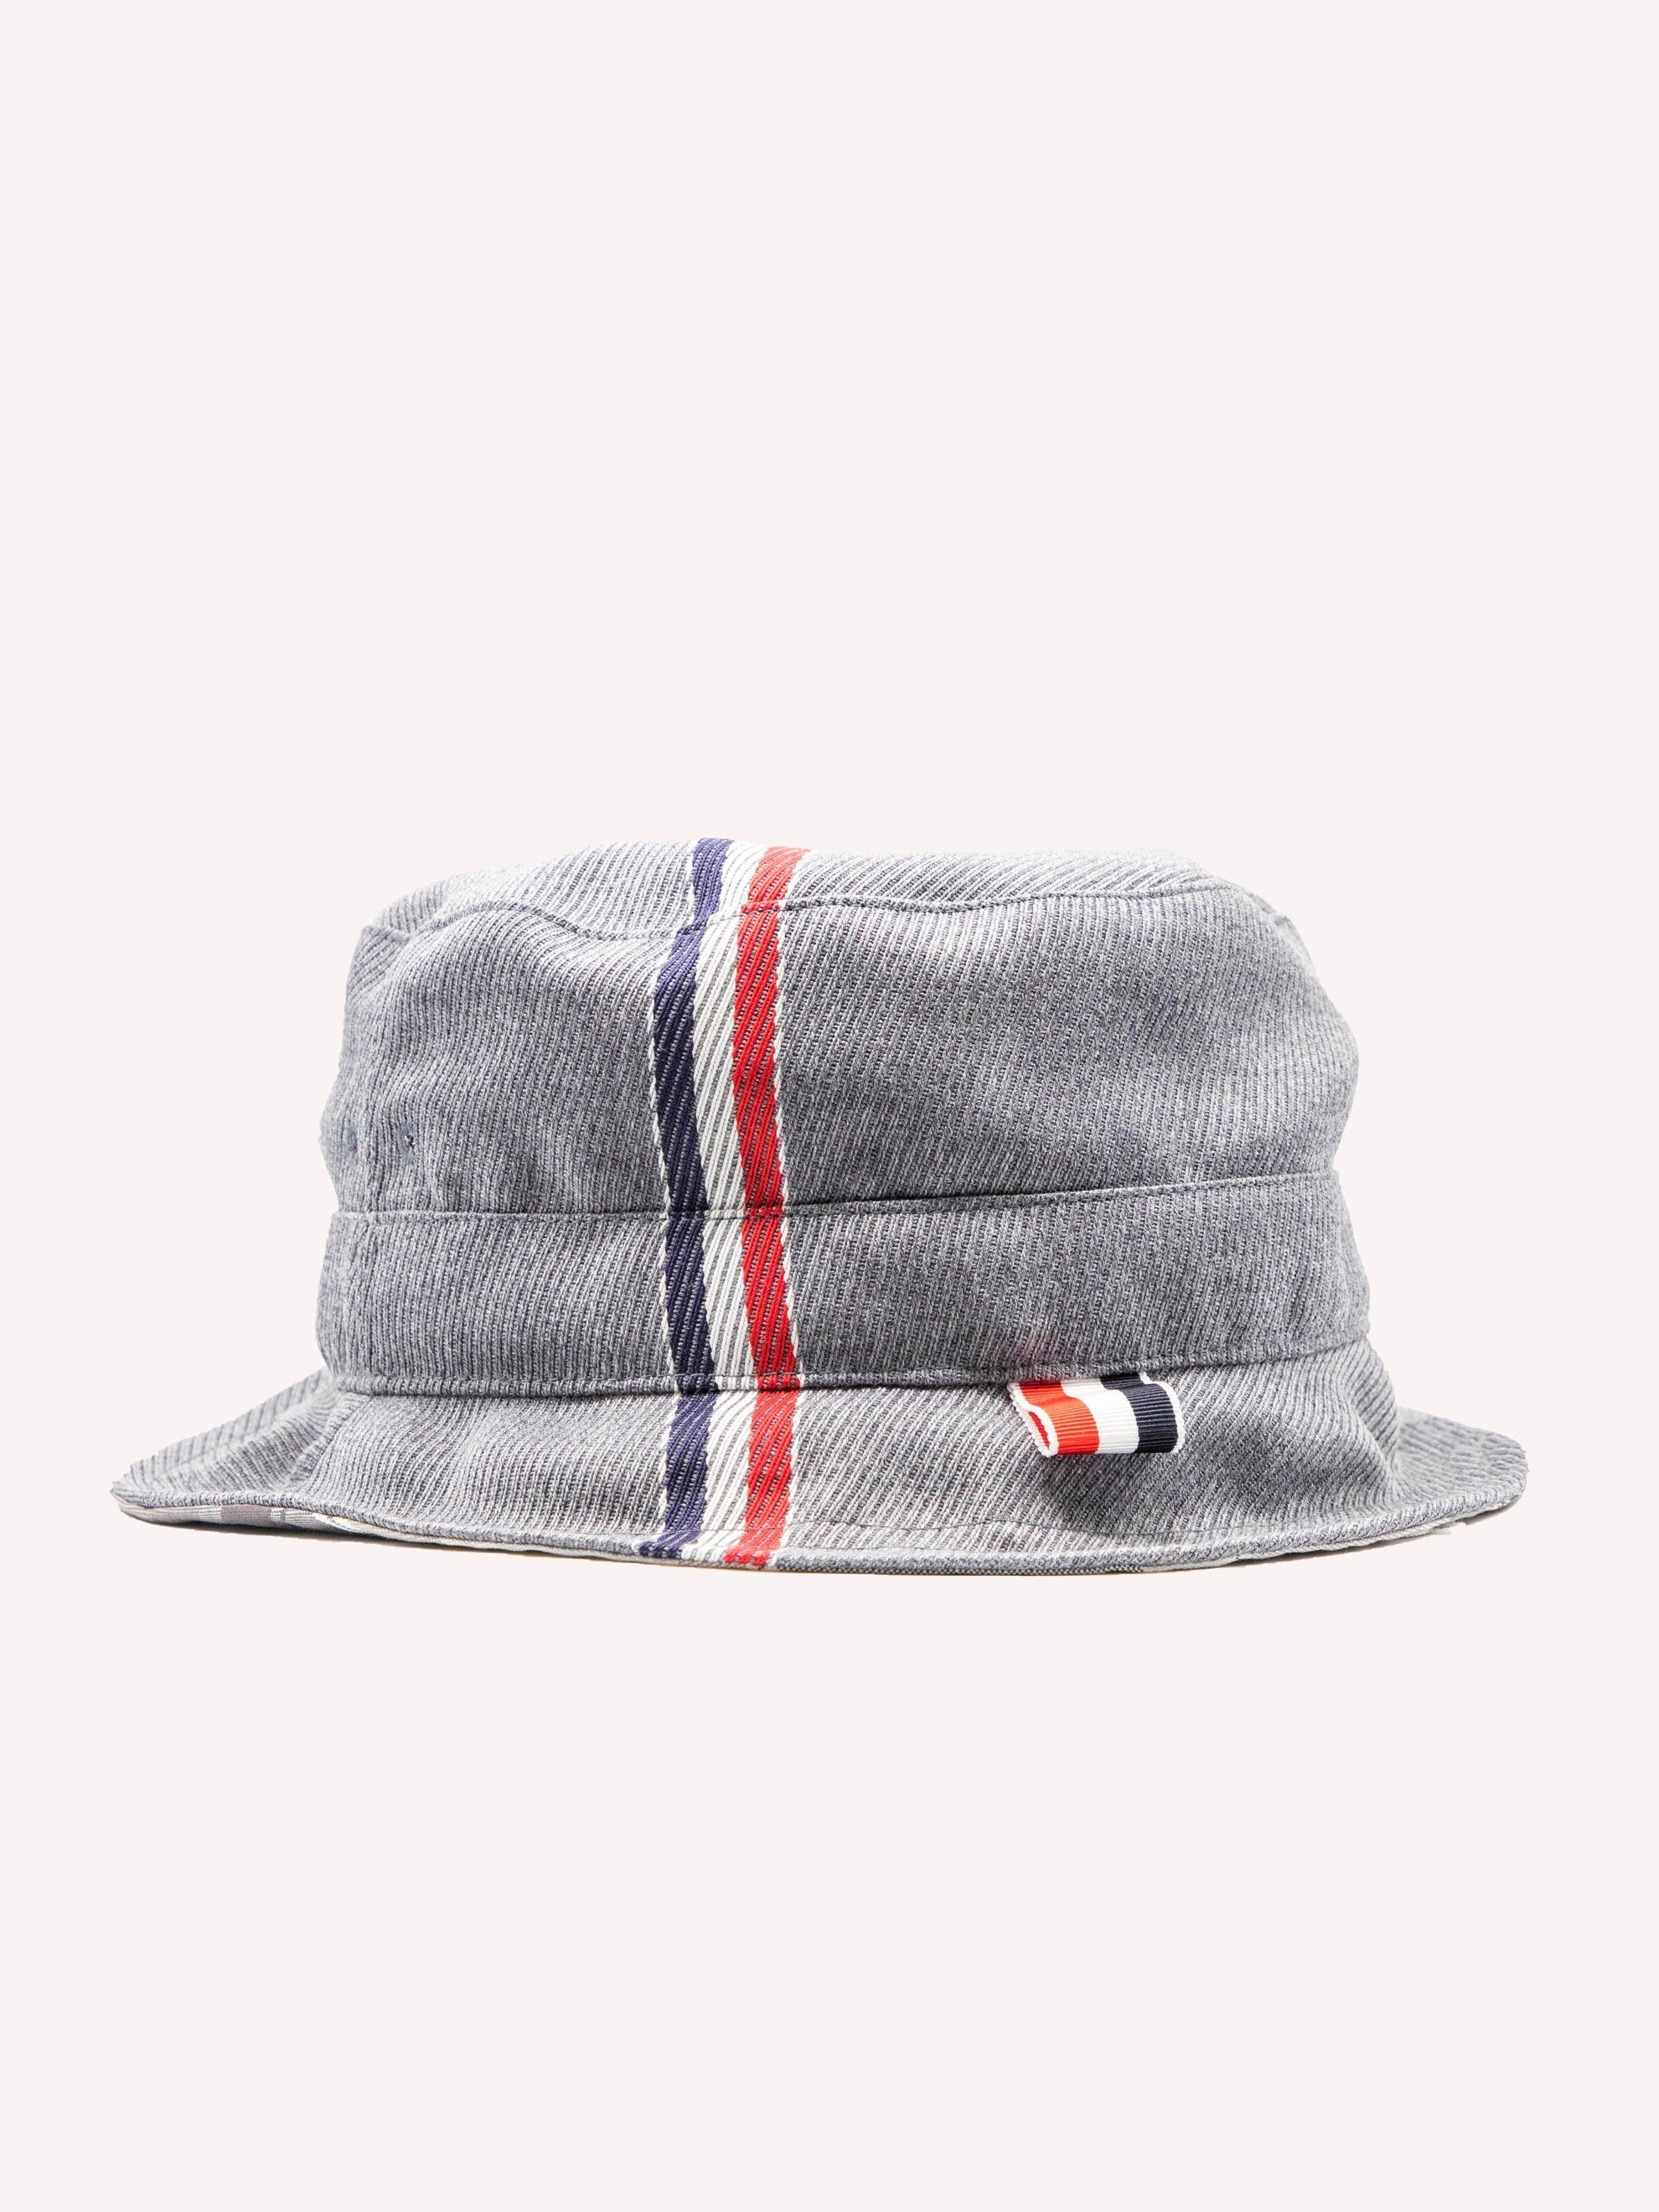 Med Grey Bucket Hat W/ Lining In Funmix In School Uniform Twill 2